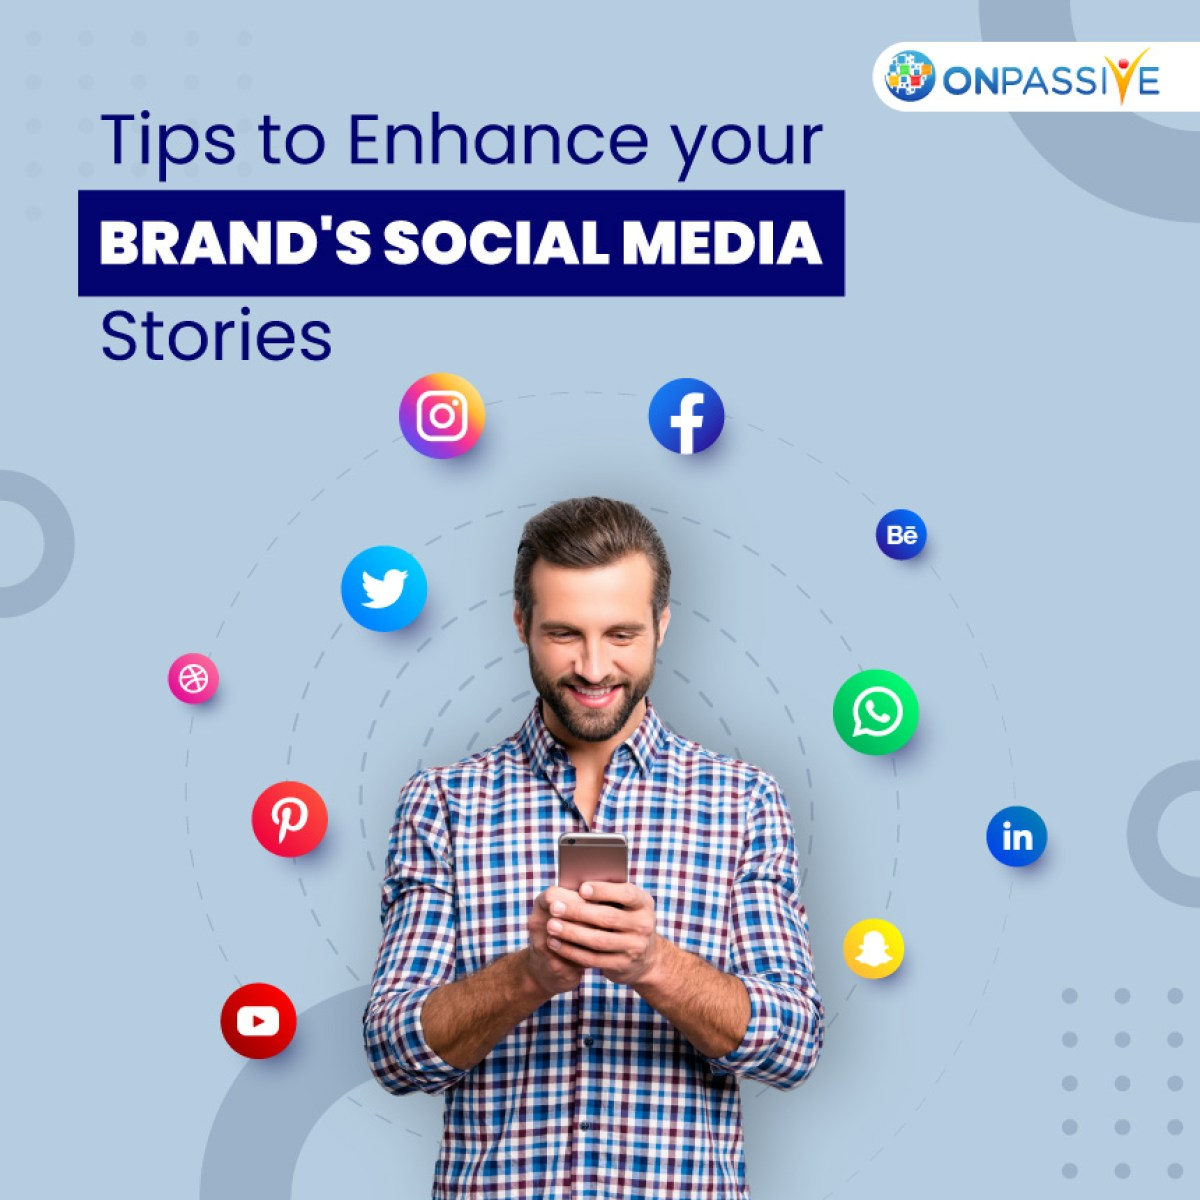 How To Make Your Brand's Social Media Stories More Appealing?